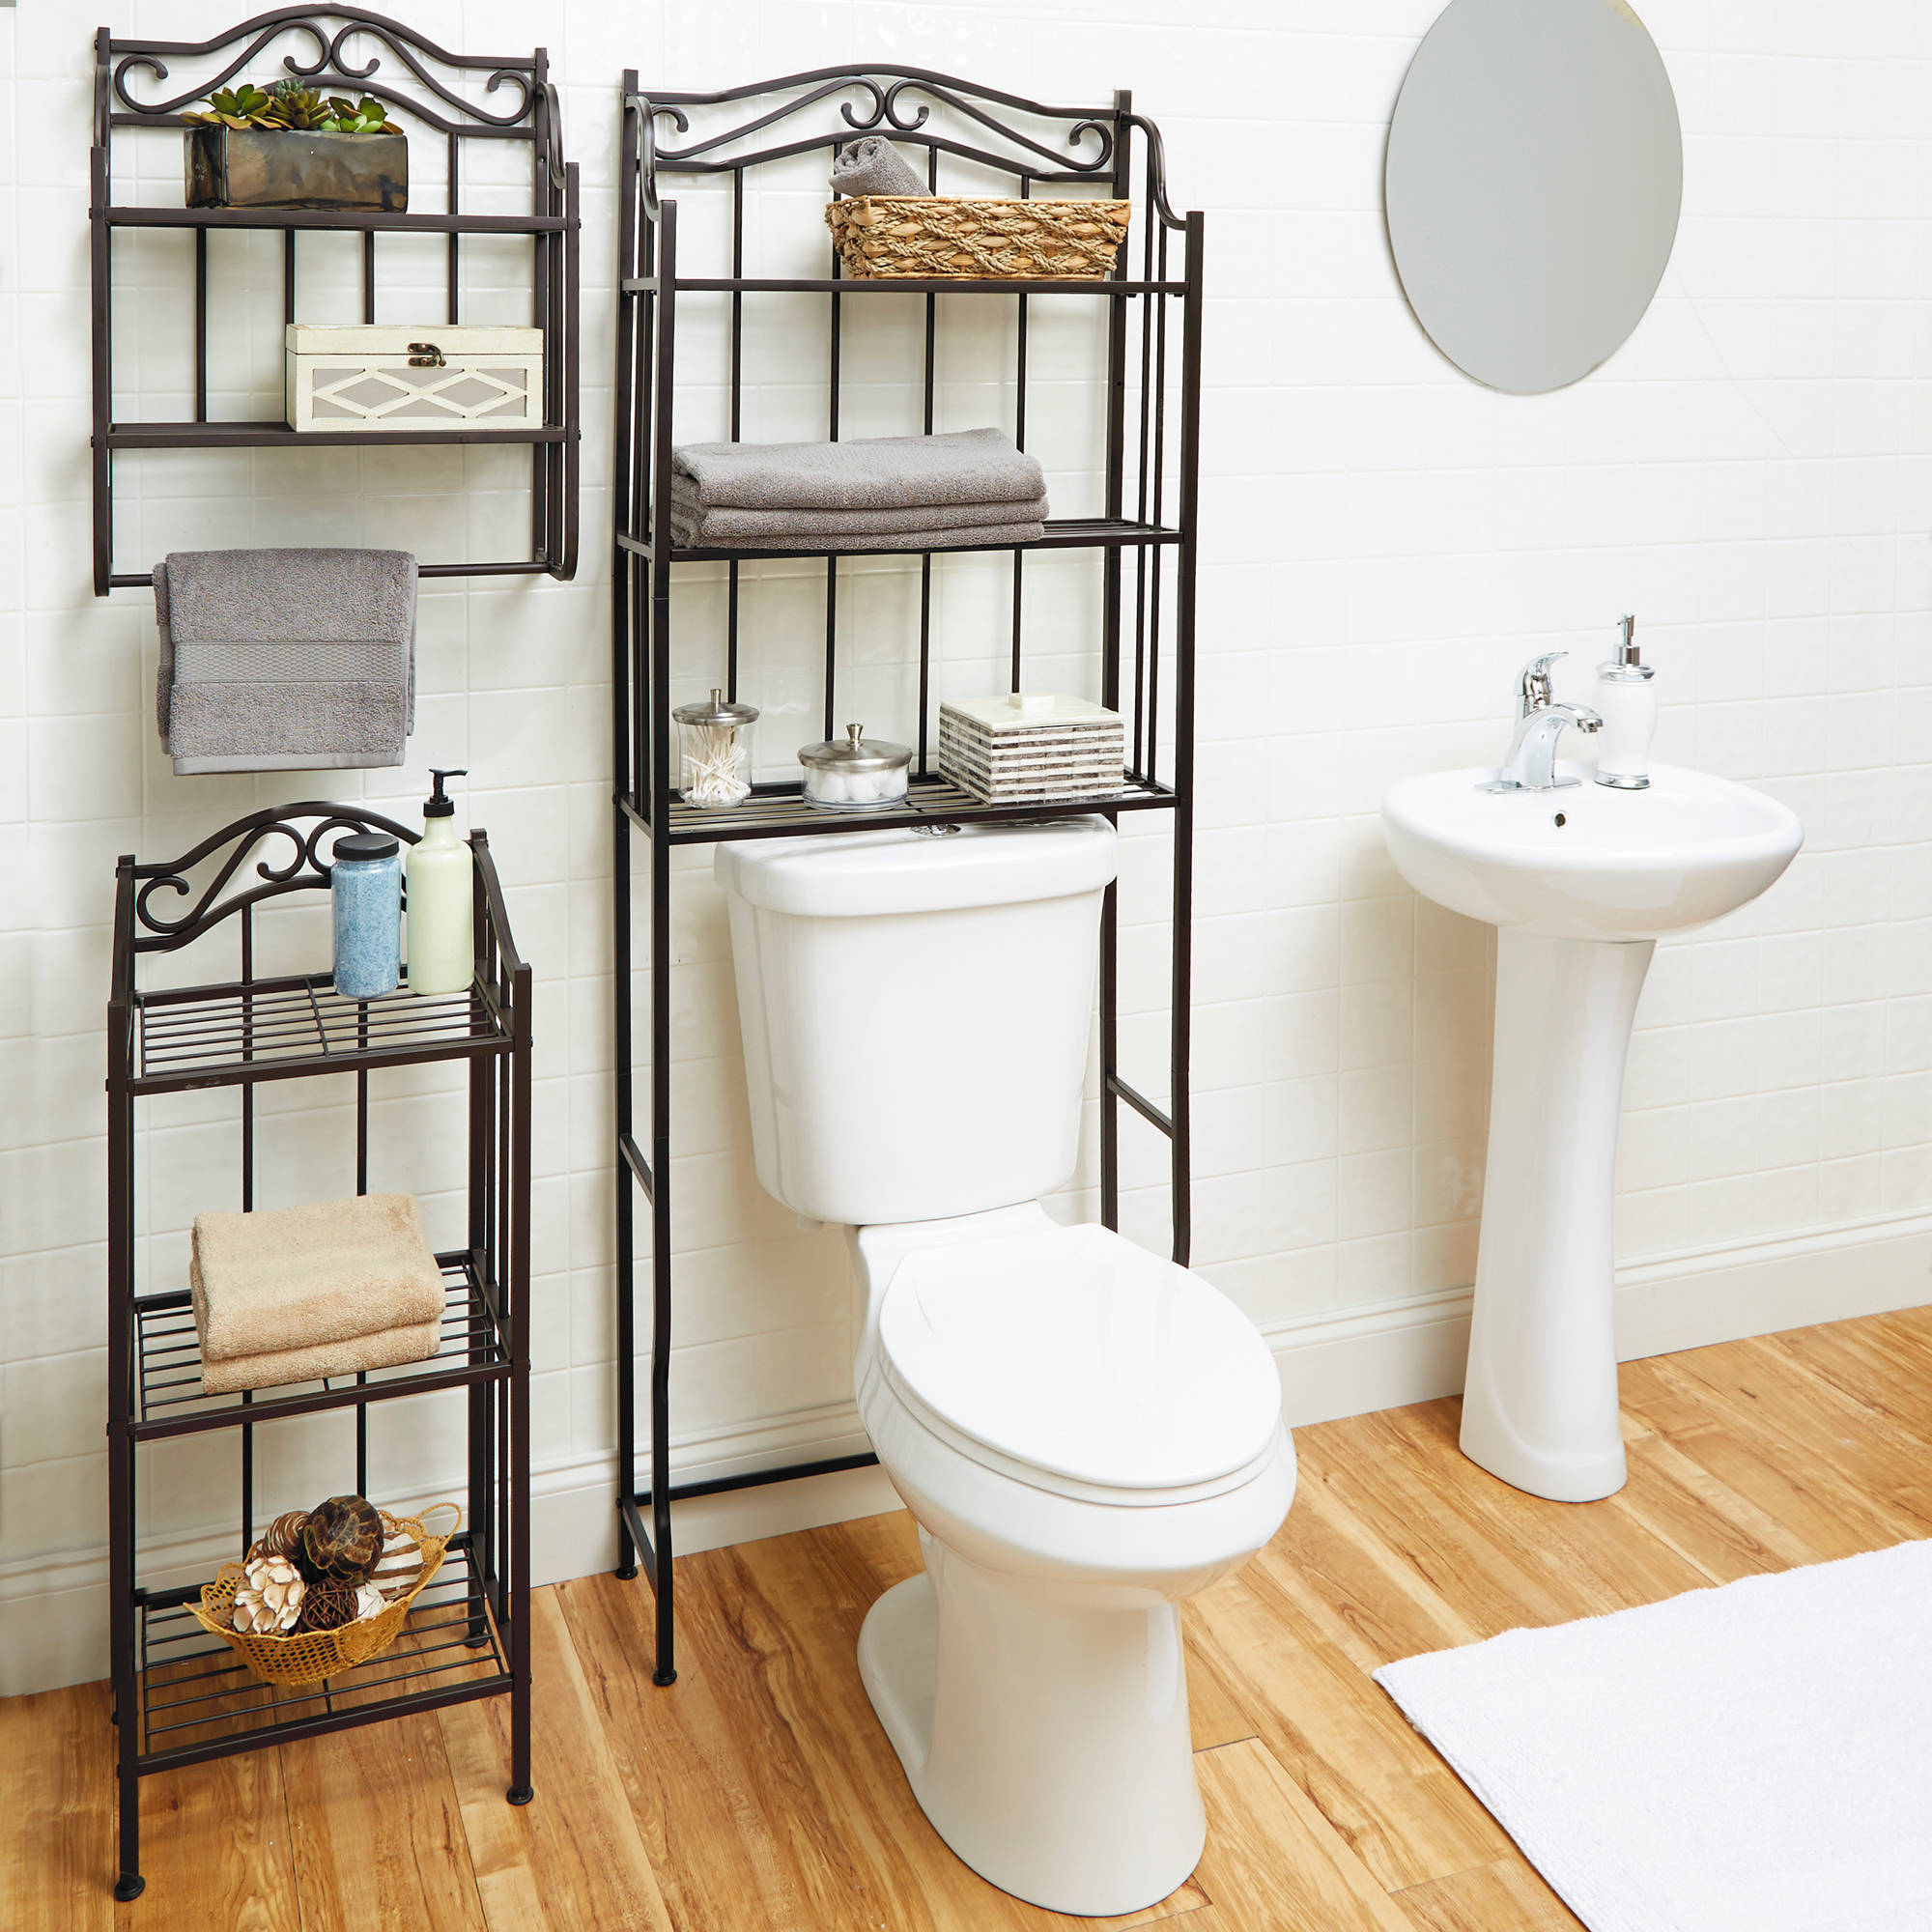 Cool Wall Mounted Bathroom Storage Of Chapter Shelf Oil Rubbed Bronze Finish Walmartreview